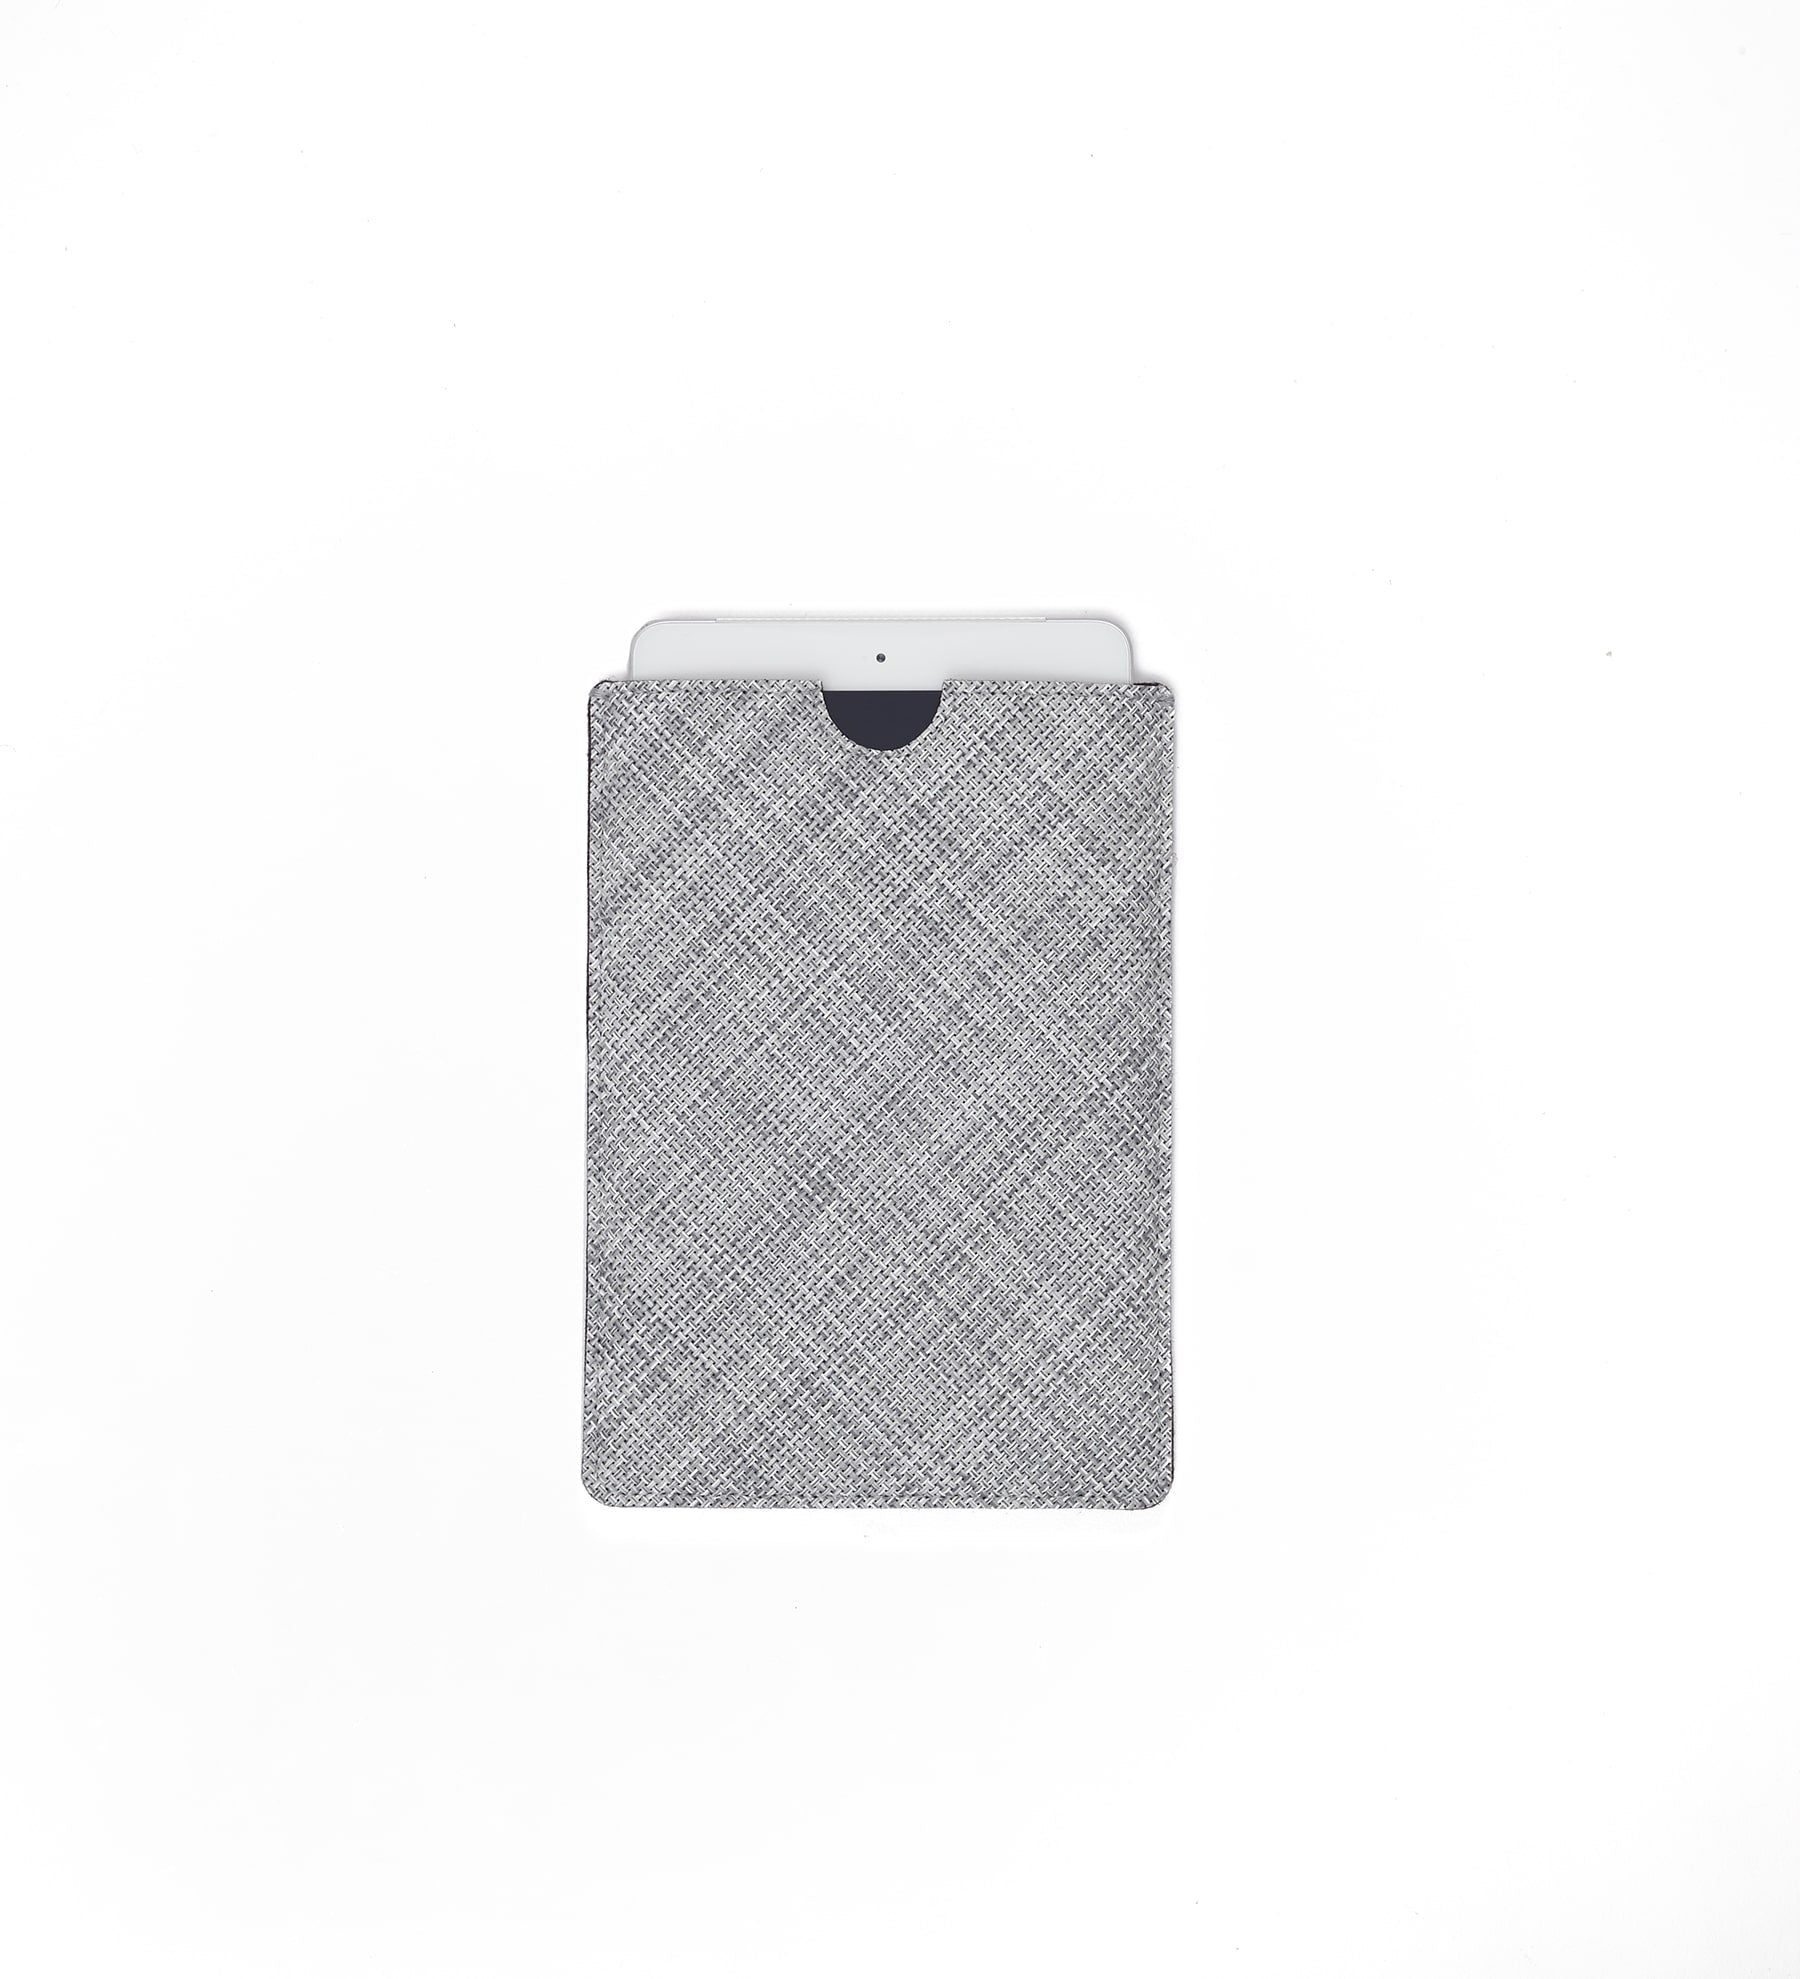 Mist Grey Tablet Sleeve by Chilewich